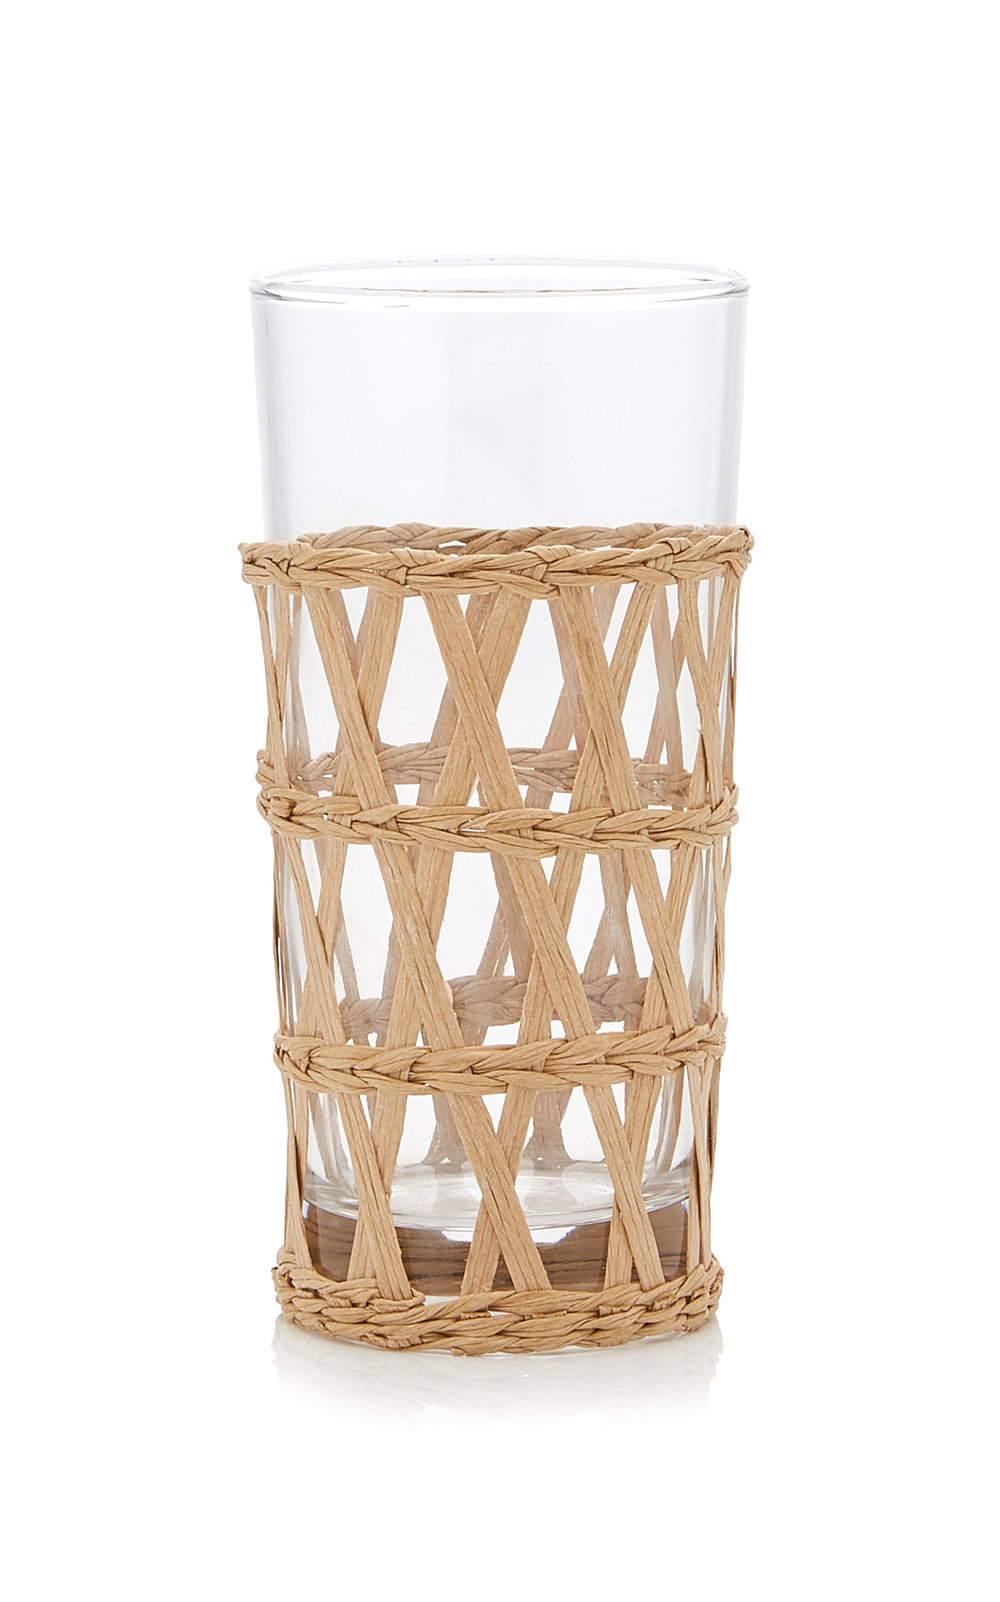 large_amanda-lindroth-neutral-woven-glass-3.jpg